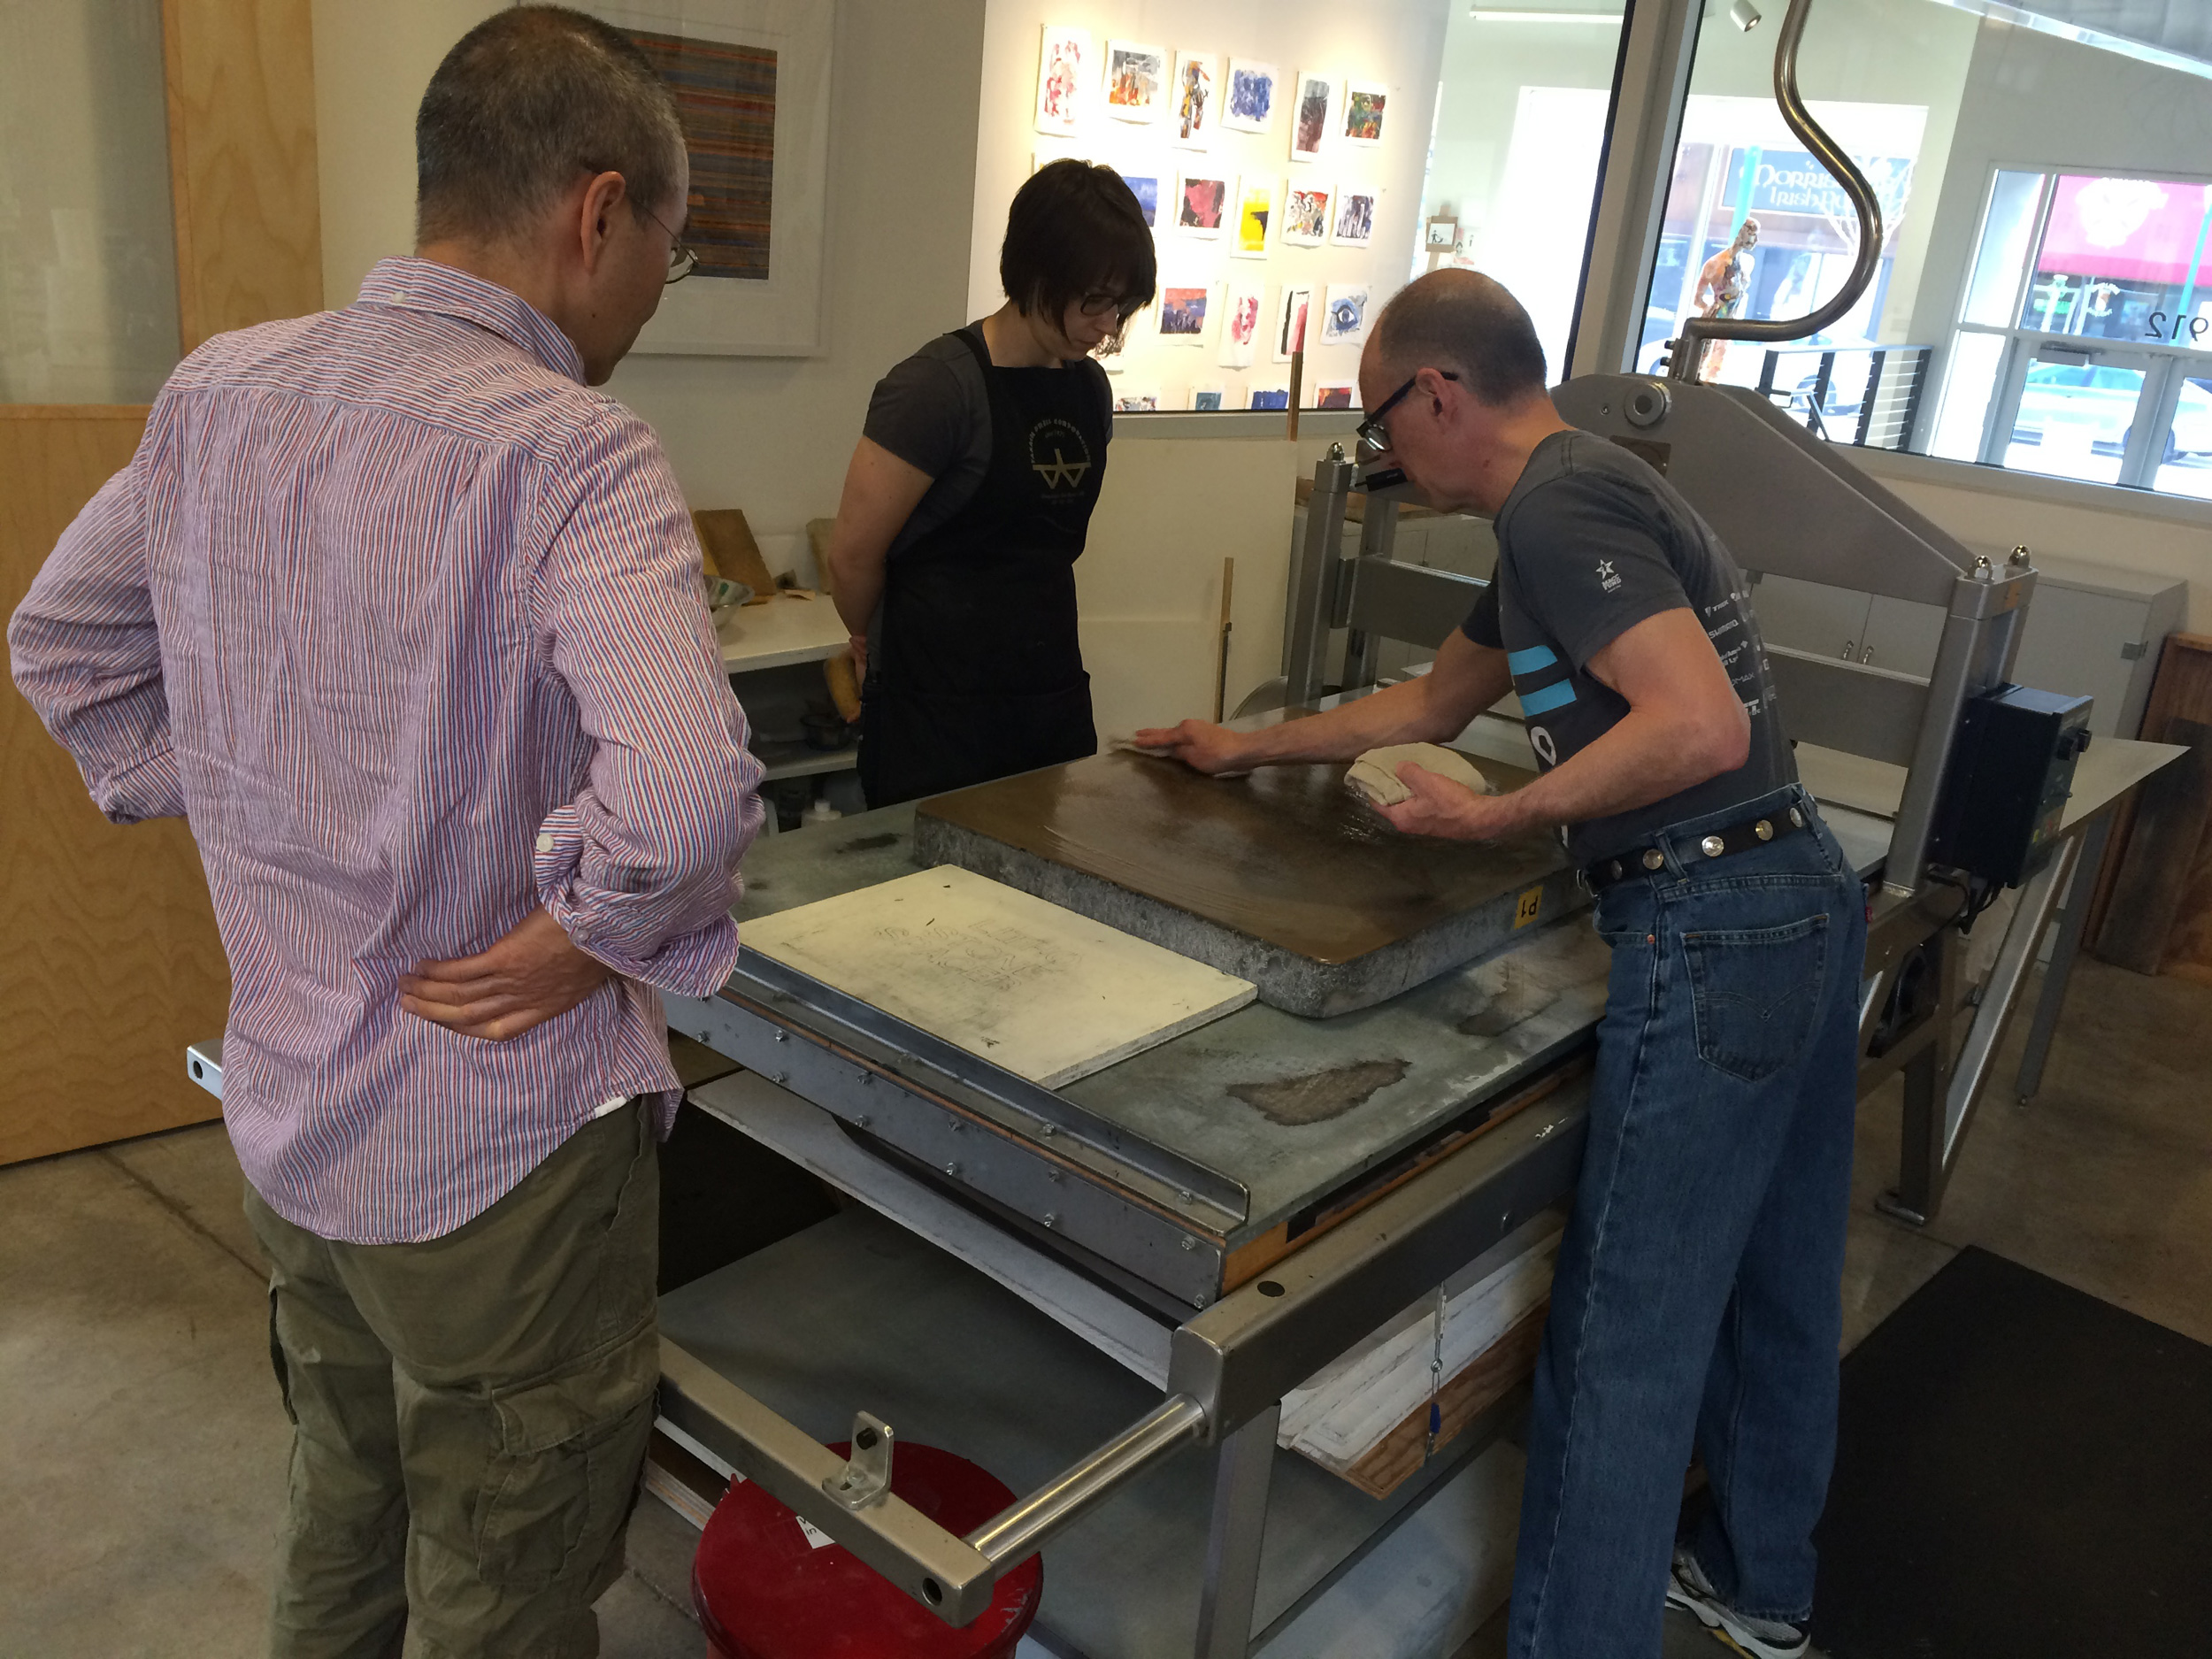 HPE Artist, Do Ho Suh, observing the printing of his stone lithograph